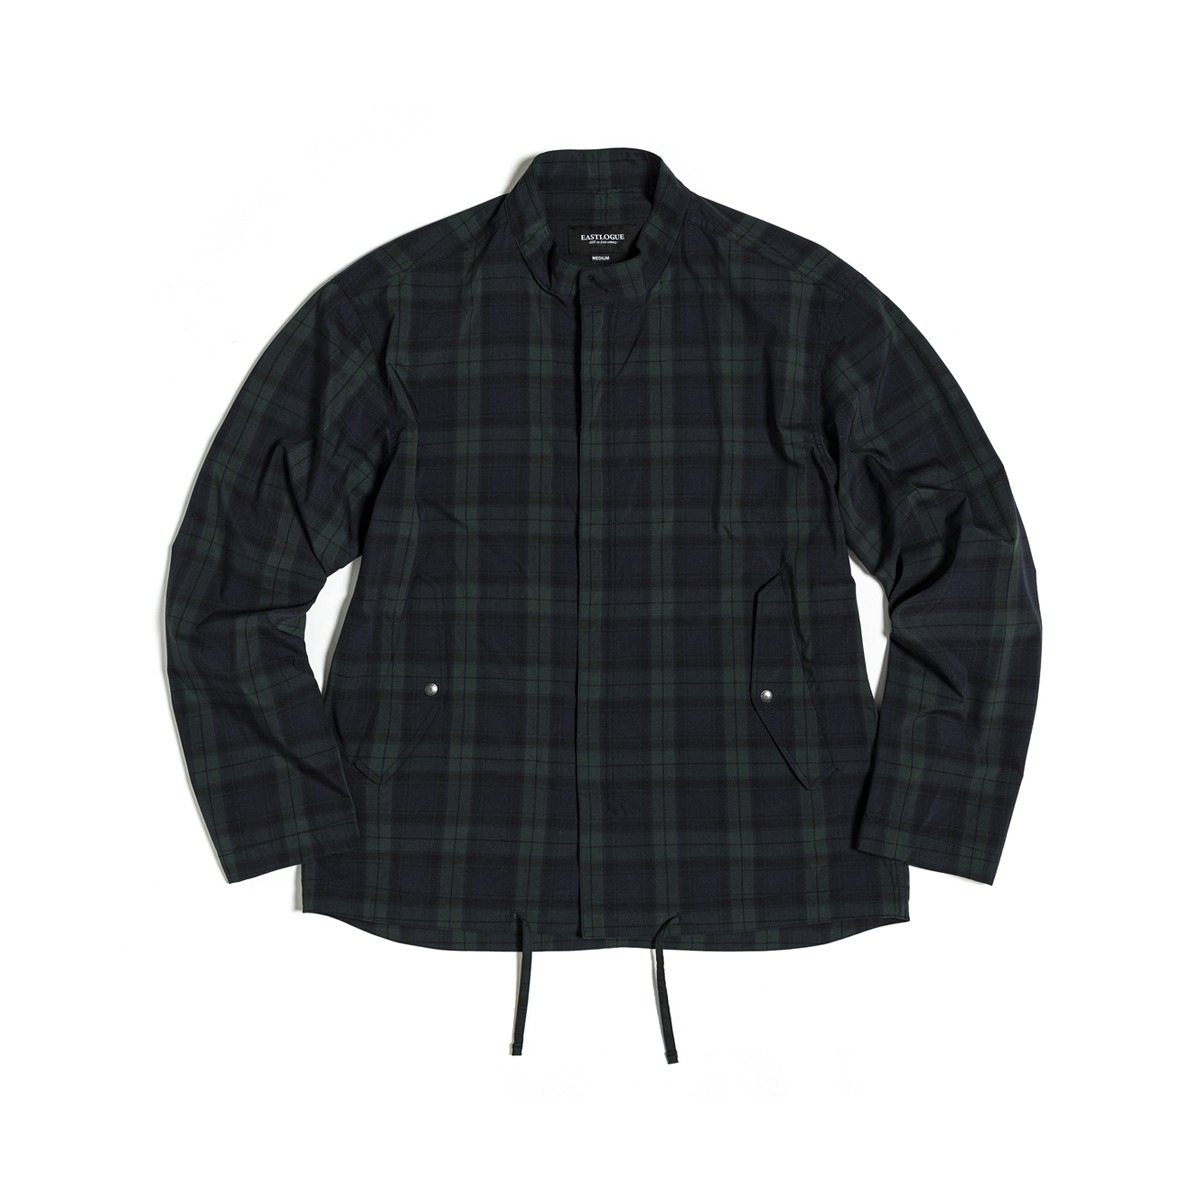 [EASTLOGUE] FISHTAIL SHIRT JACKET 'BLACK WATCH'